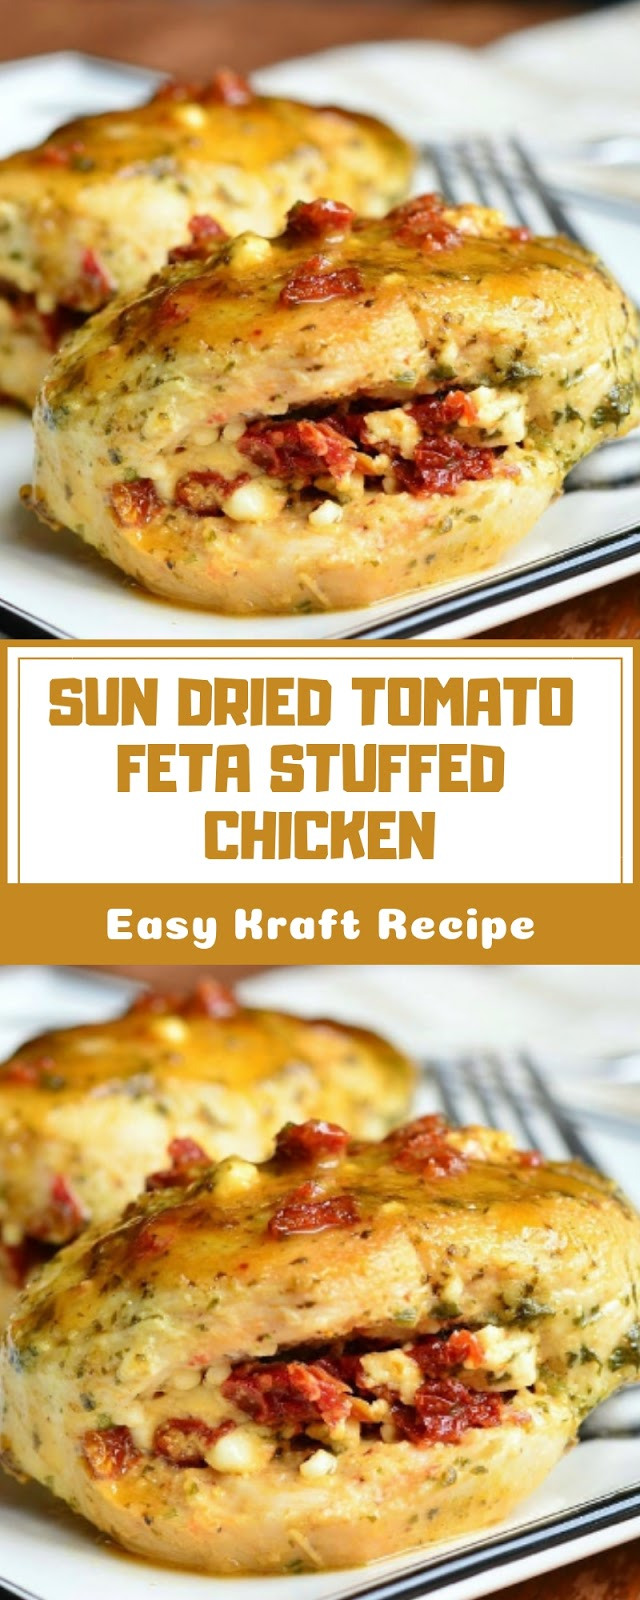 SUN DRIED TOMATO FETA STUFFED CHICKEN